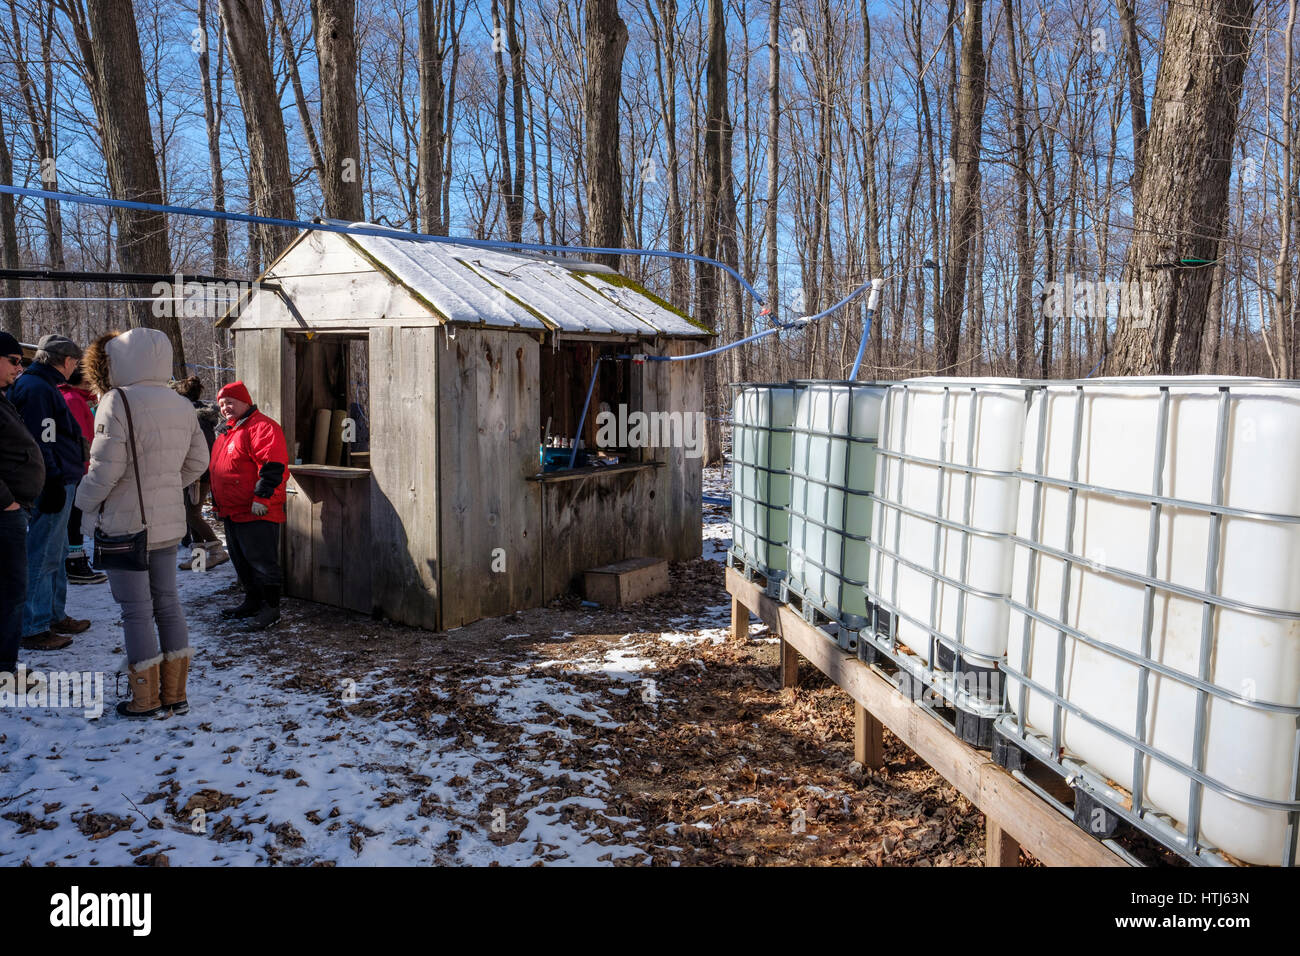 Storage containers, tanks, used to store raw sap before being boiled to produce maple syrup in the Kinsmen Fanshawe - Stock Image